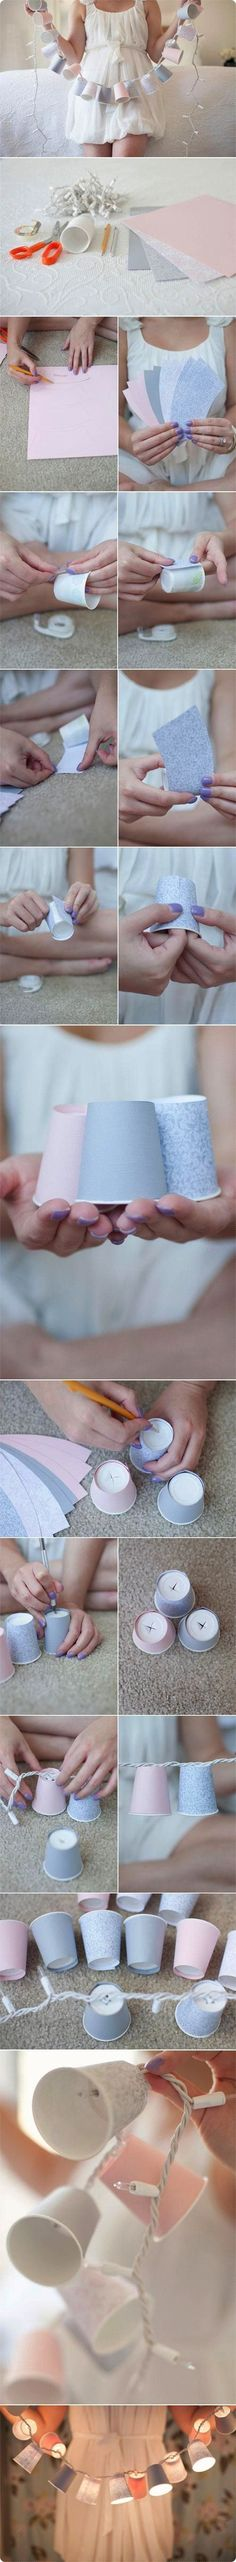 this would be fun for the girls craft days!